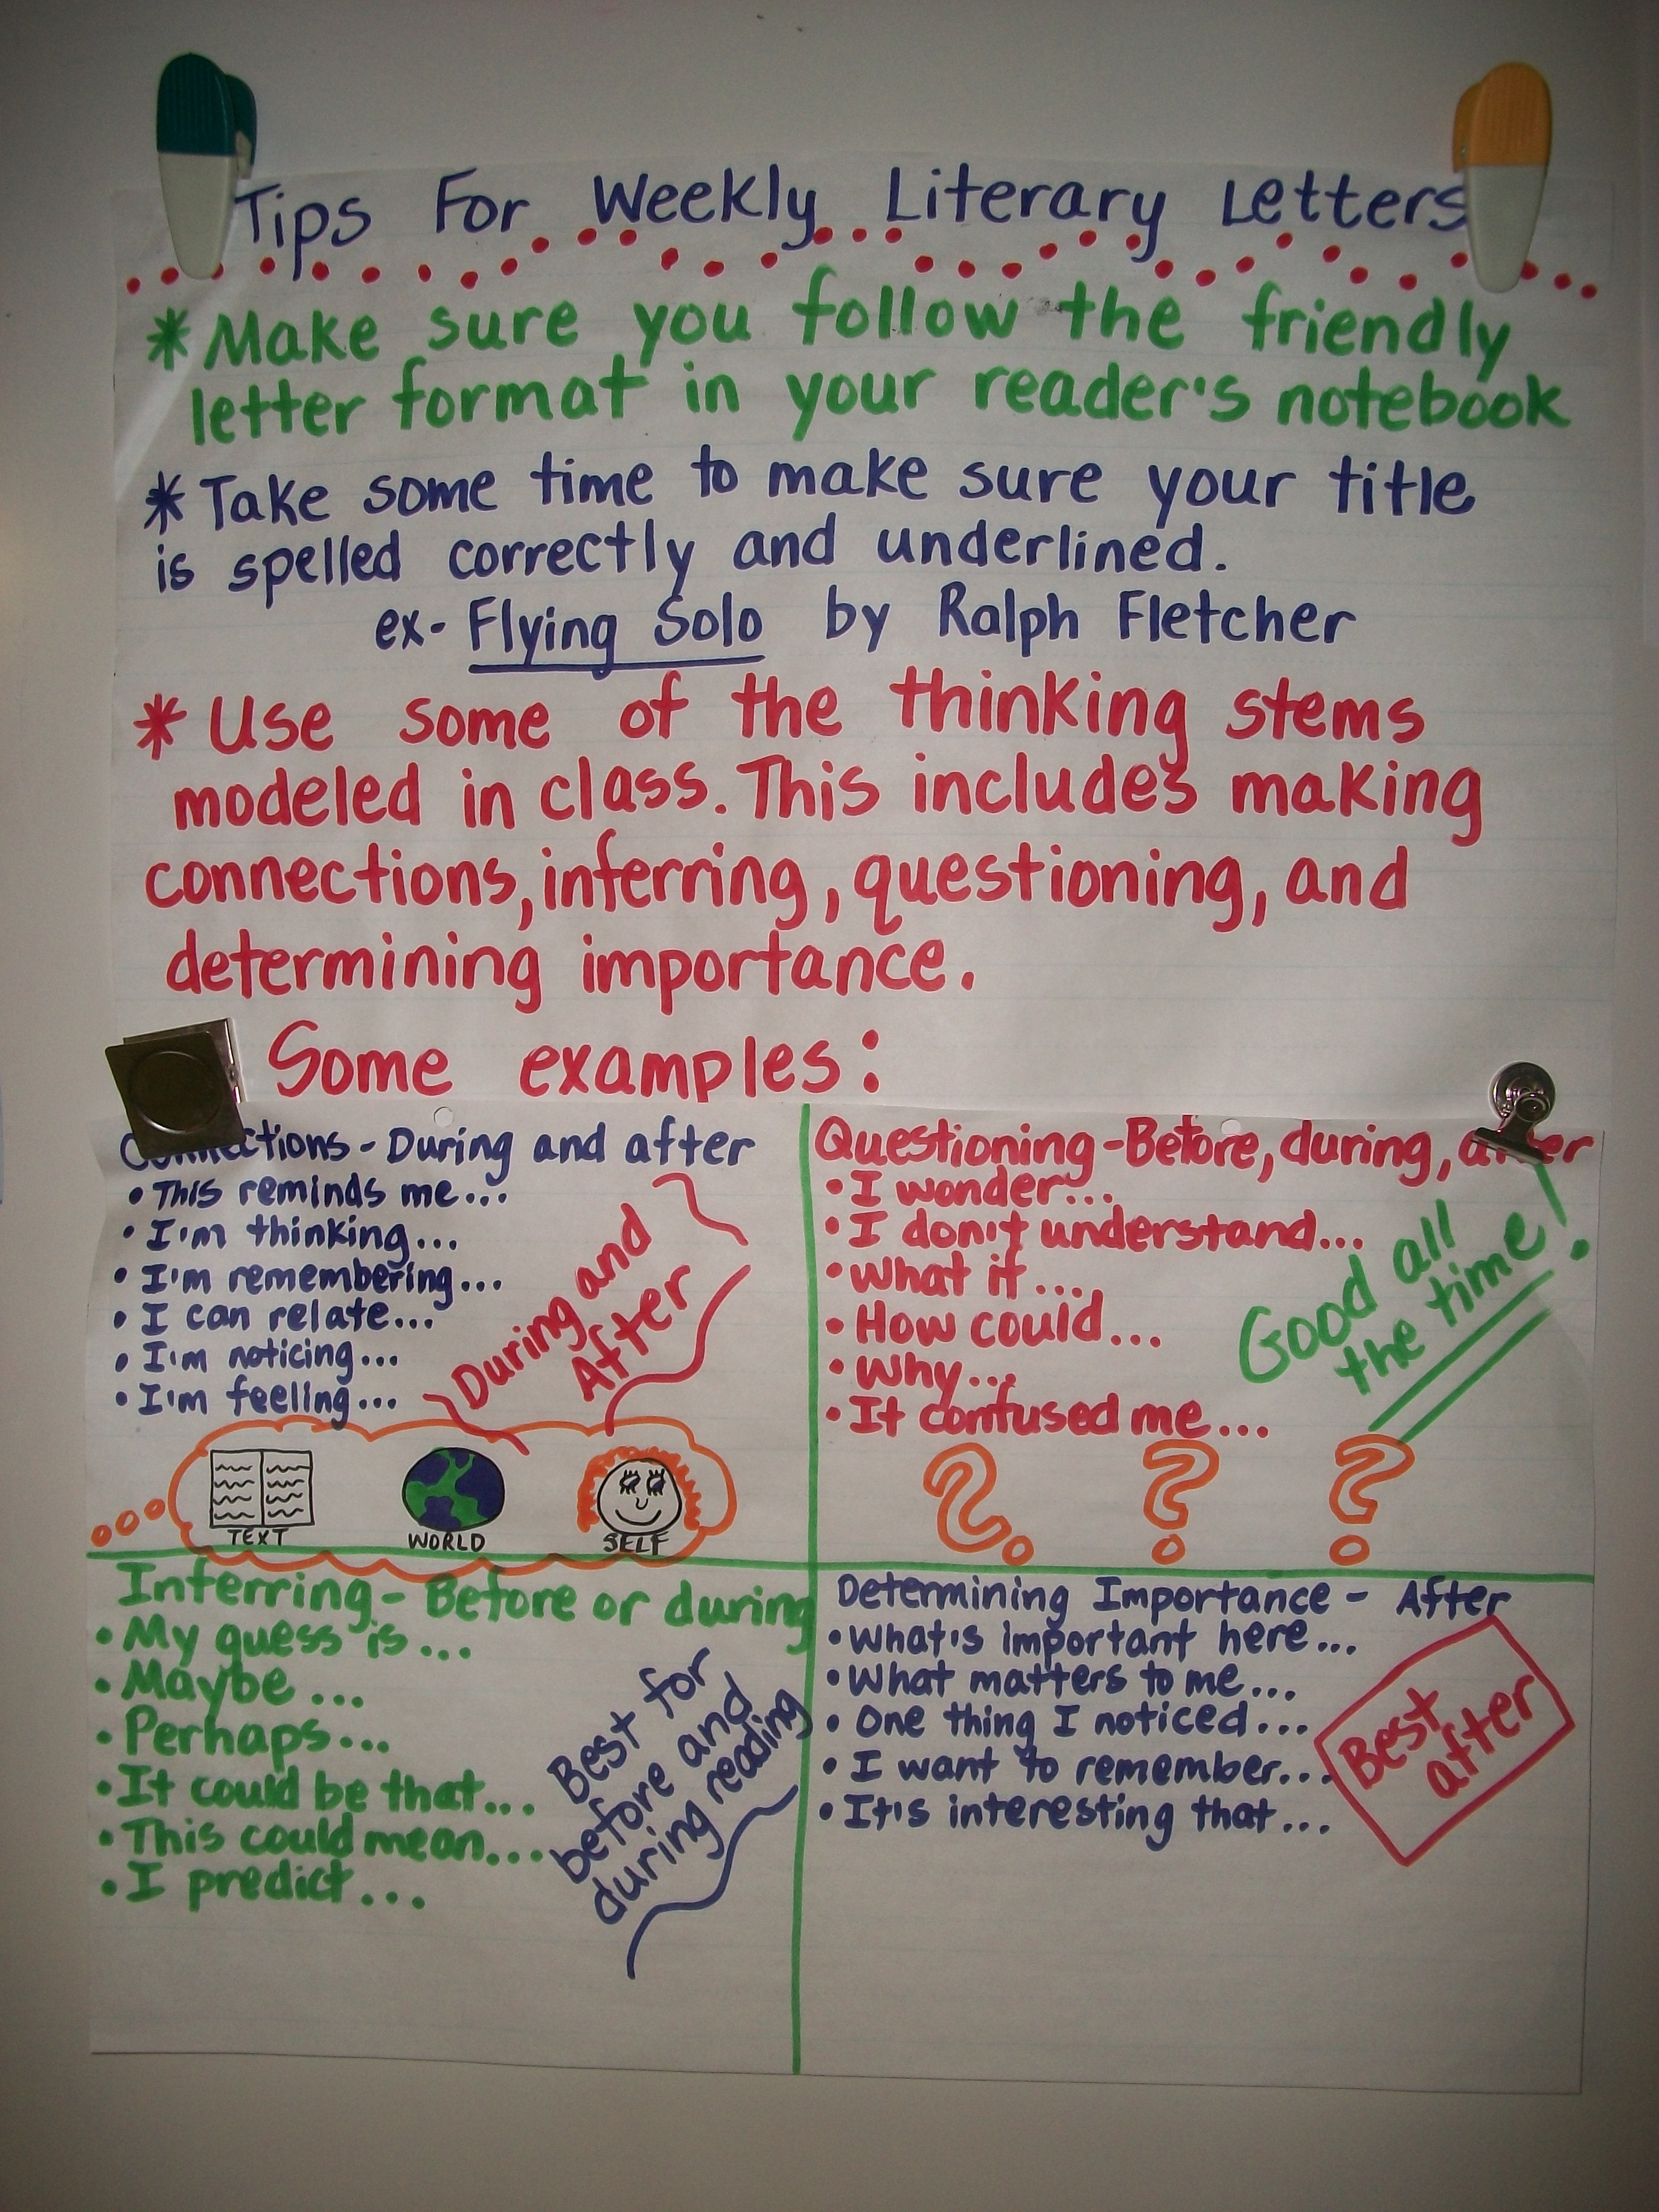 Letter Writing Anchor Chart http://6thgradescottforesmanreadingstreetresources.wordpress.com/2011/05/04/literary-letter-anchor-chart/